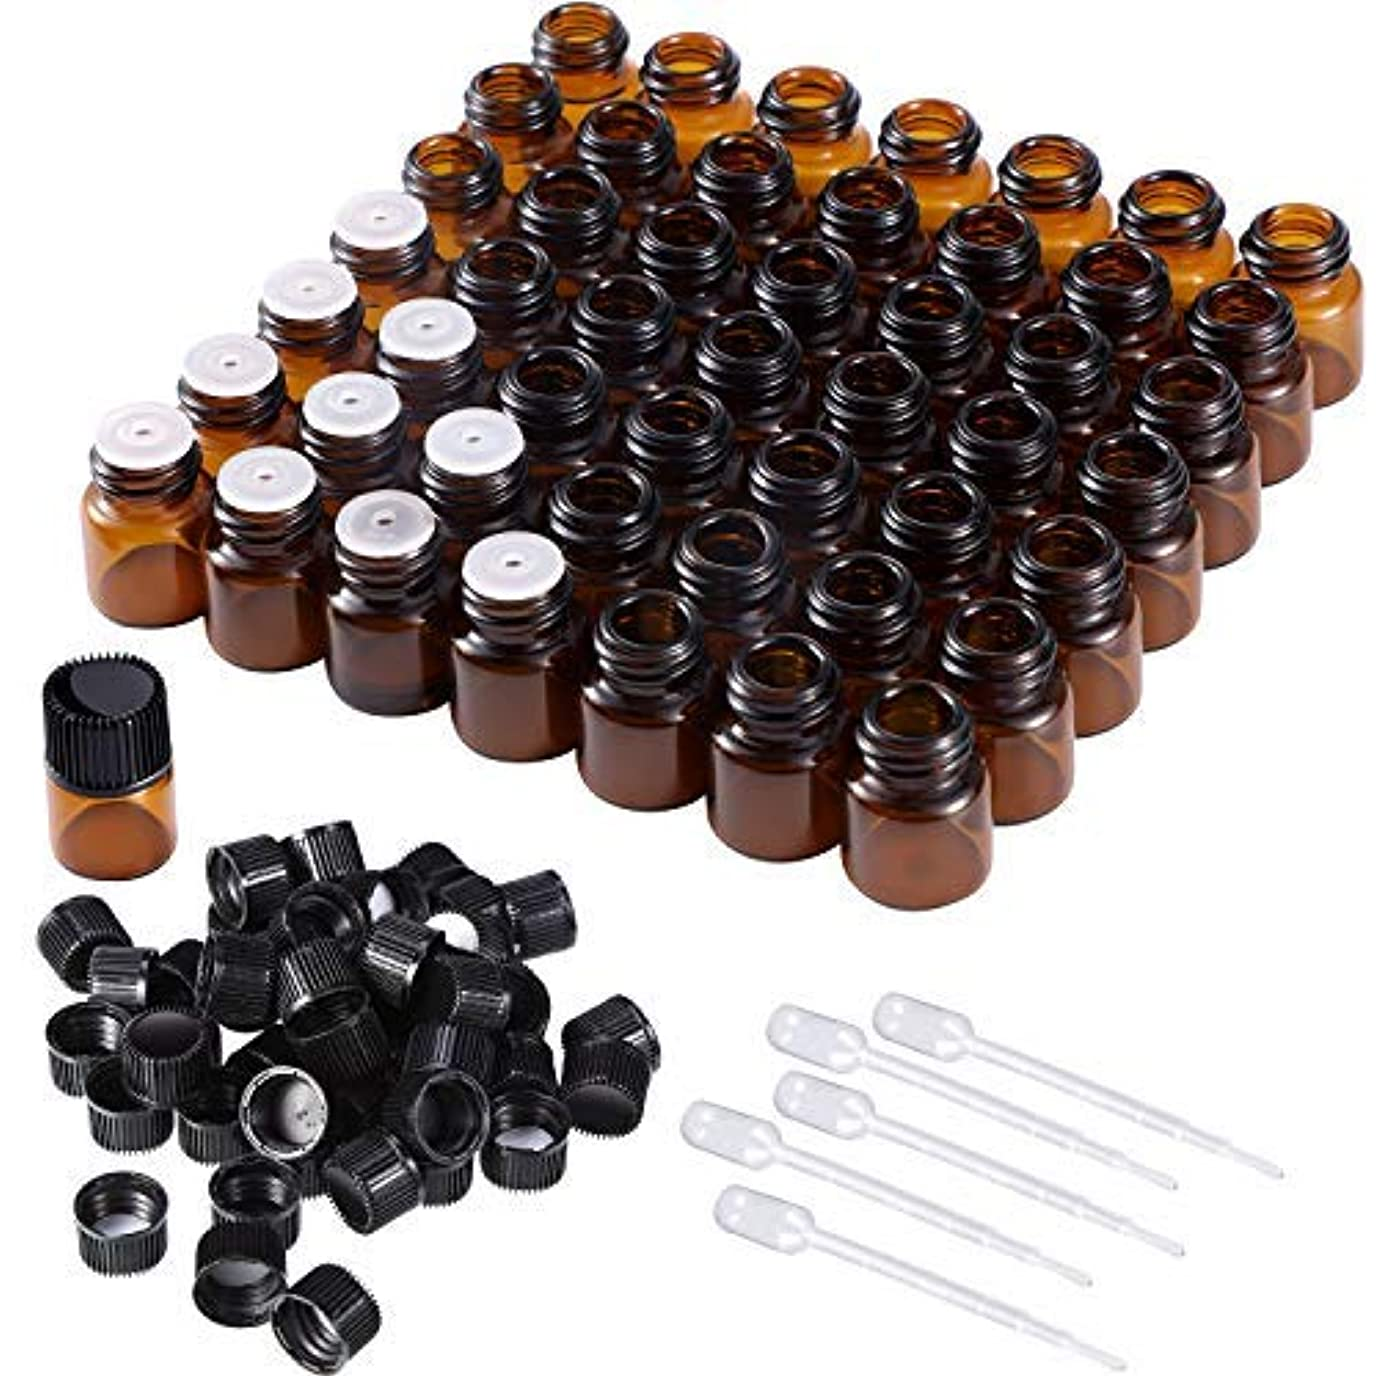 命令民間人休憩50 Pieces 1 ml Mini Amber Glass Vial Bottles Essential Oil Bottles with Orifice Reducers Screw Caps and 5 Pieces...